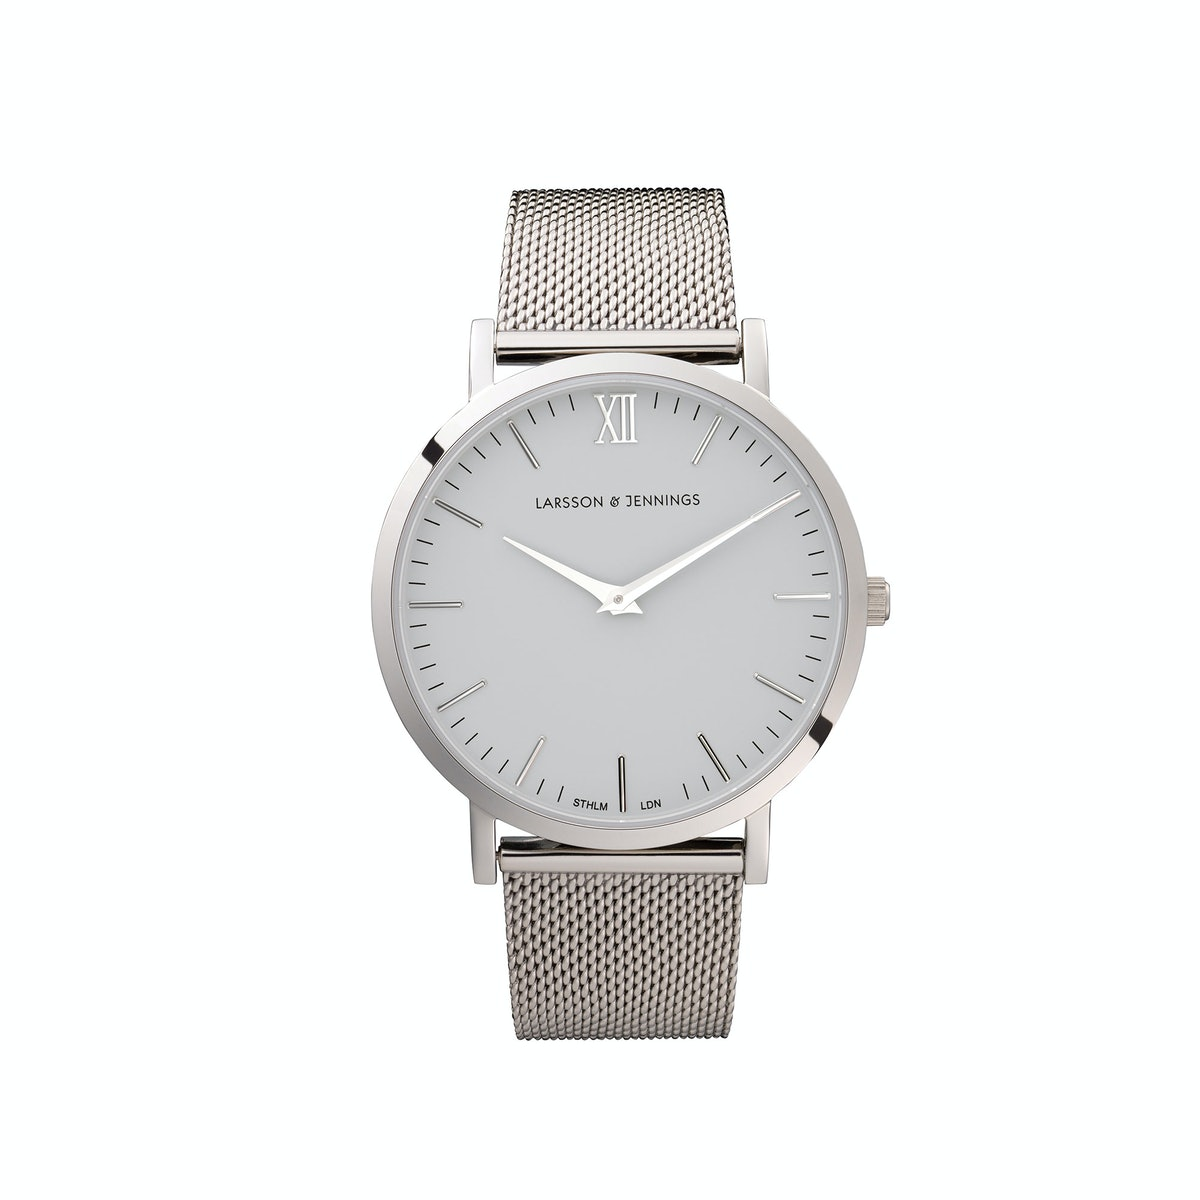 Larsson and Jennings stainless steel watch